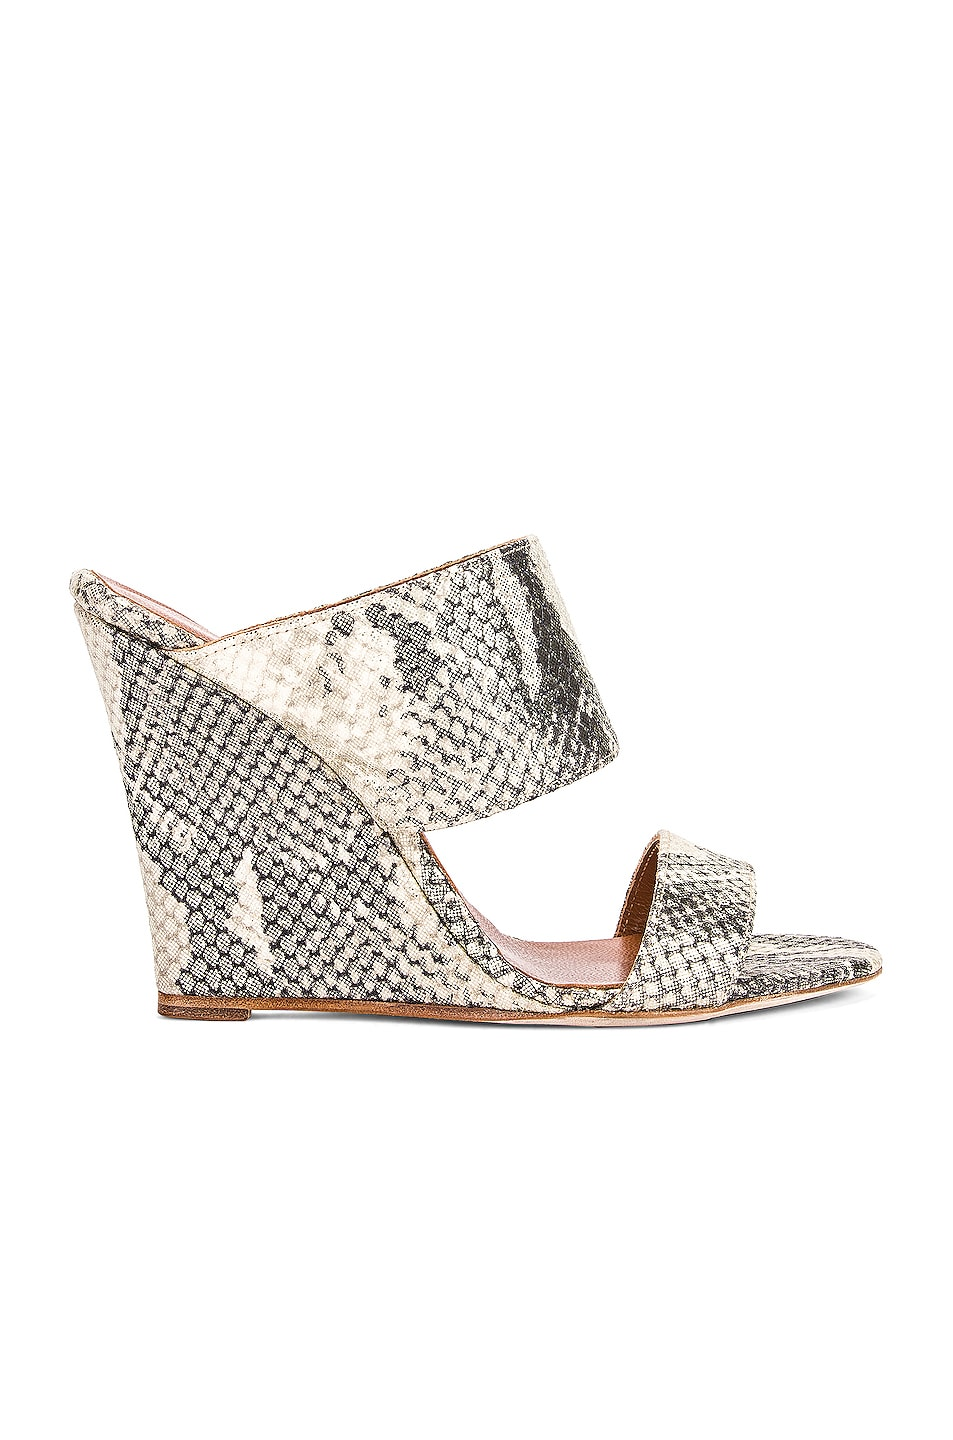 Image 1 of Paris Texas Python Lame Print 100 Wedge in Beige